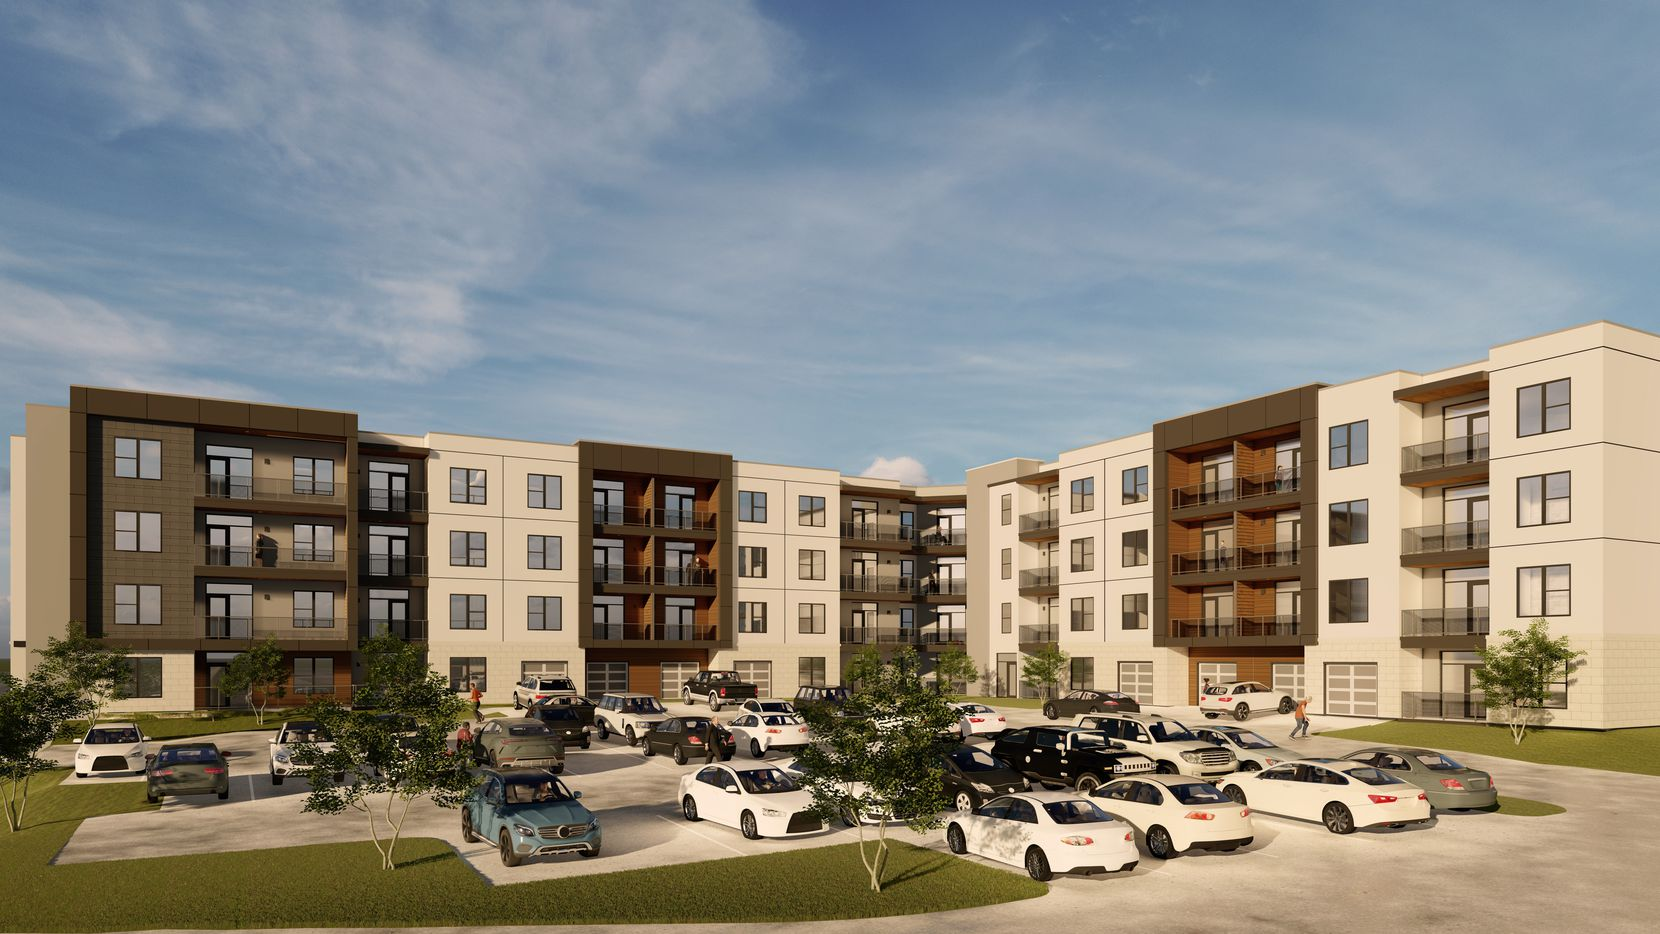 The Presidium at Hill Street apartment project is planned near Bush Turnpike.